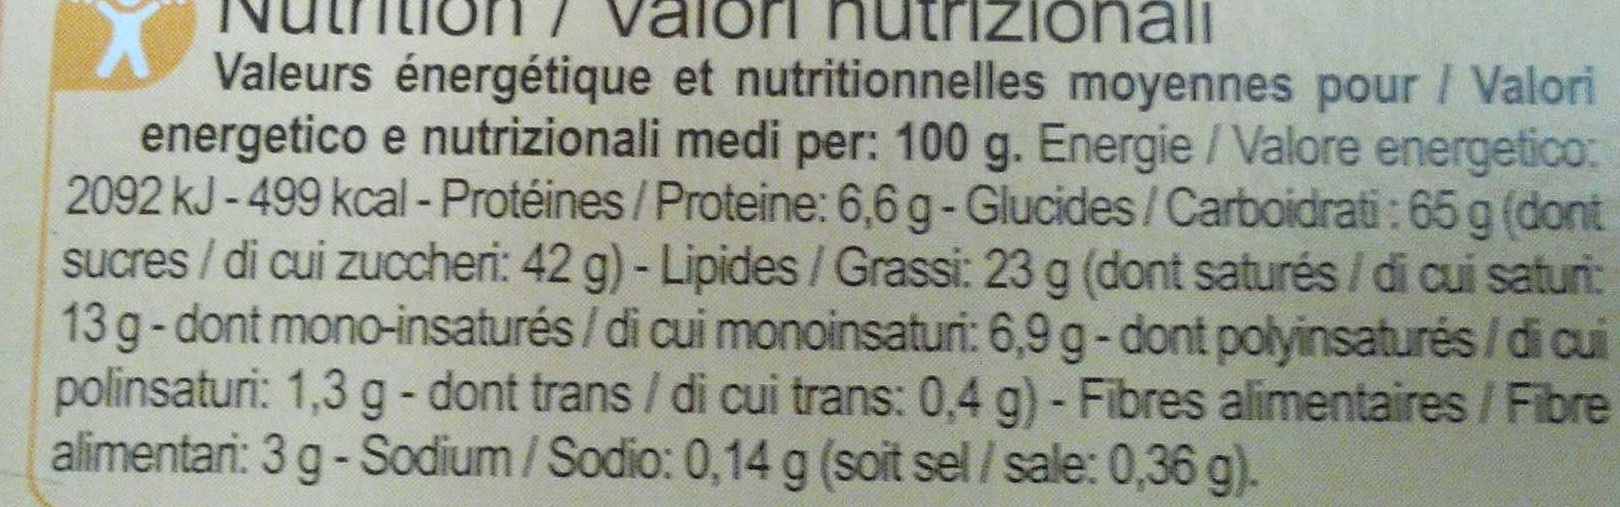 Assortiment biscuits pâtissiers Automne-Hiver - Nutrition facts - fr